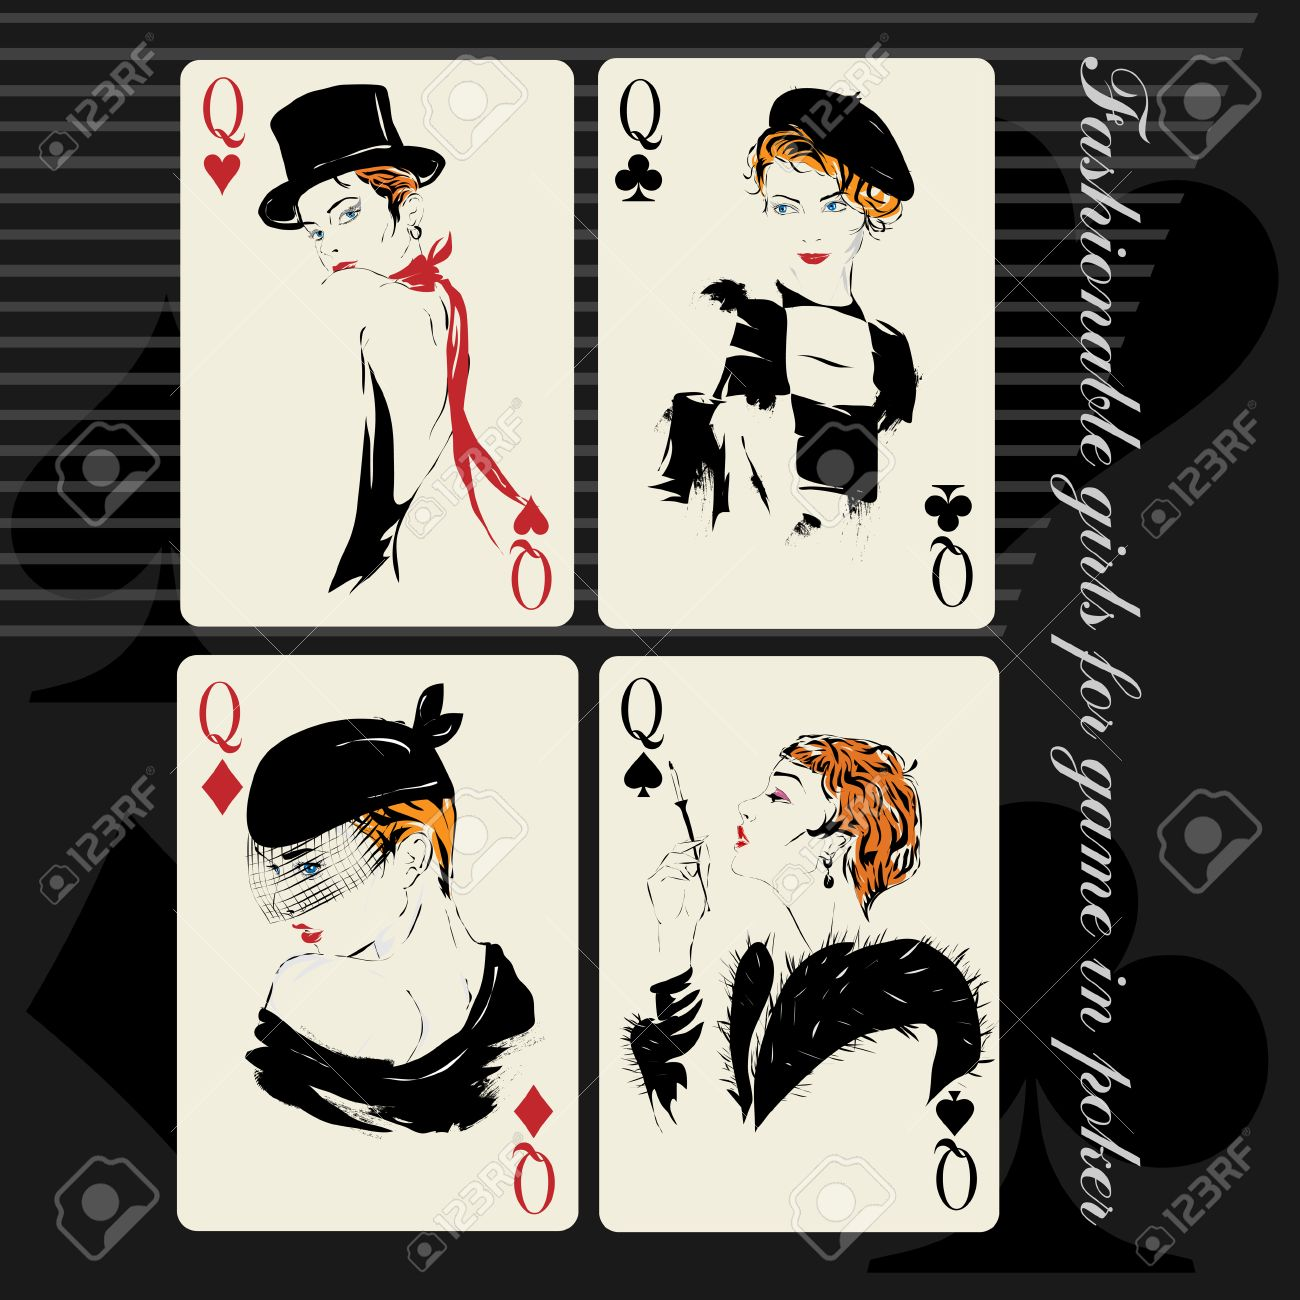 Casino style playing cards best uk gambling app